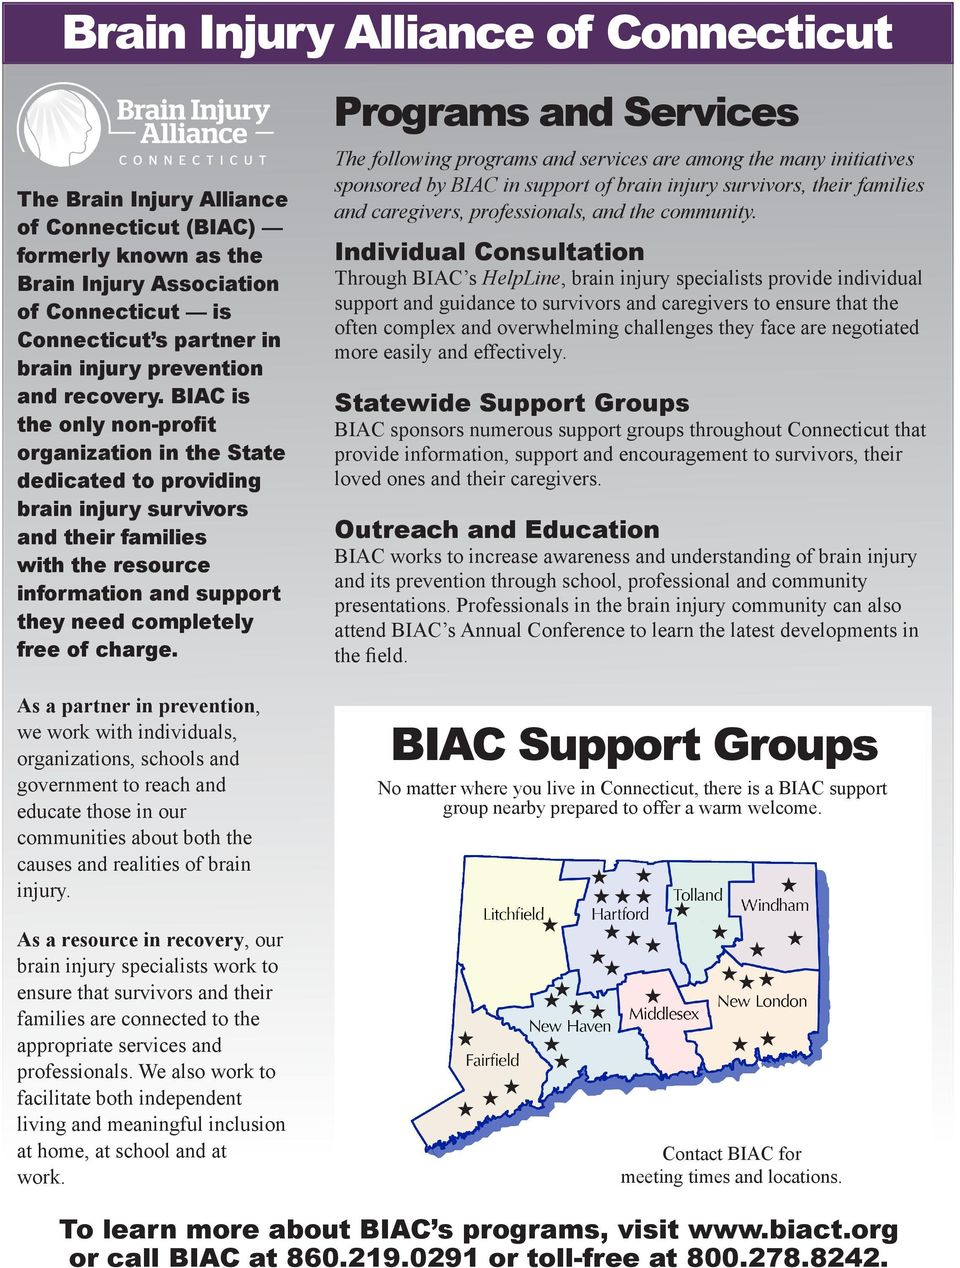 BIAC is the only non-profit organization in the State dedicated to providing brain injury survivors and their families with the resource information and support they need completely free of charge.